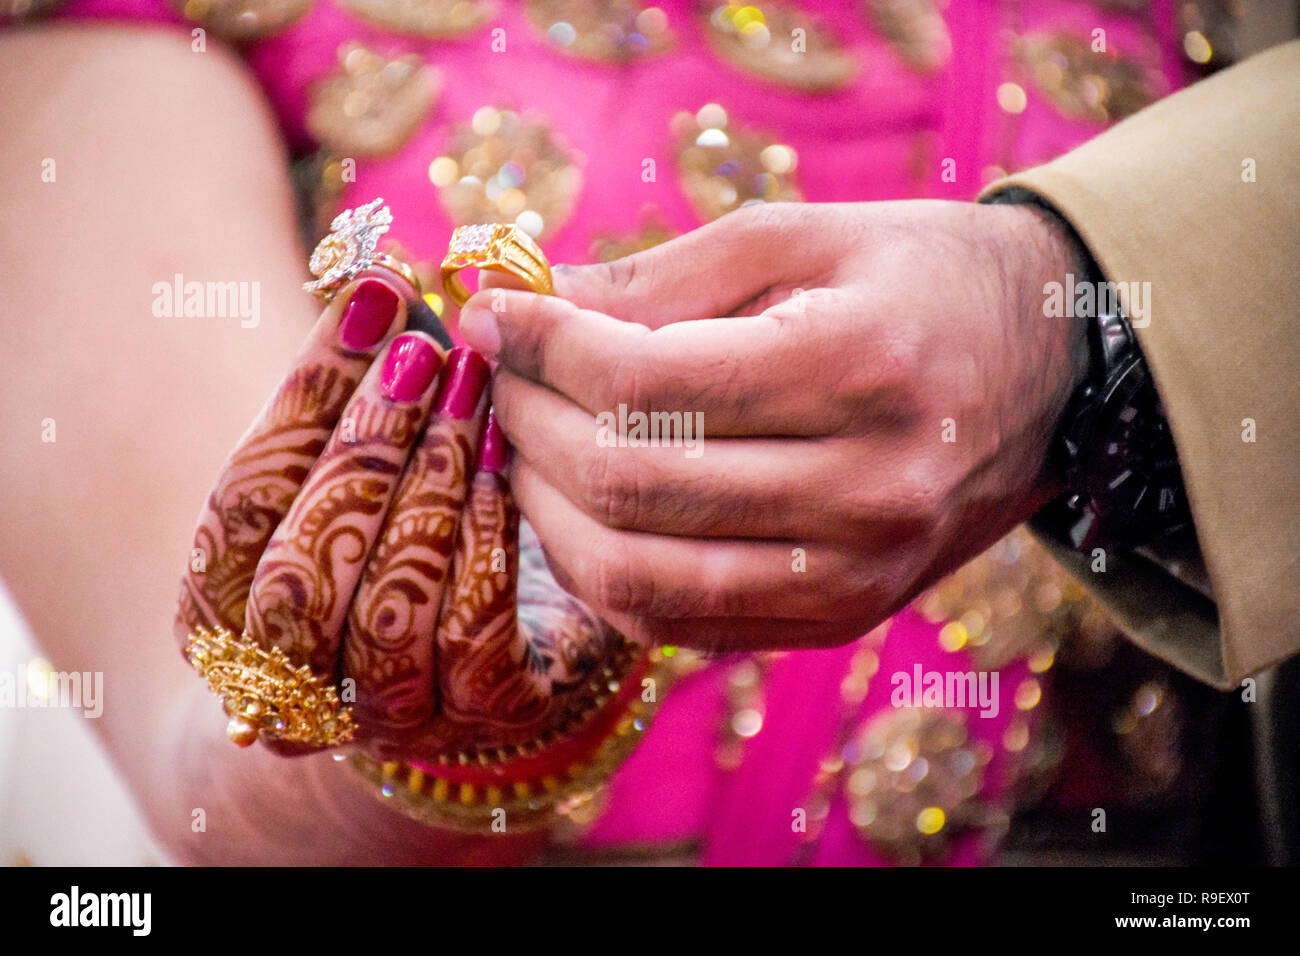 Indian Engagement High Resolution Stock Photography And Images Alamy 36+ hands png images for your graphic design, presentations, web design and other projects. https www alamy com indian couples shows engagement rings image229594424 html